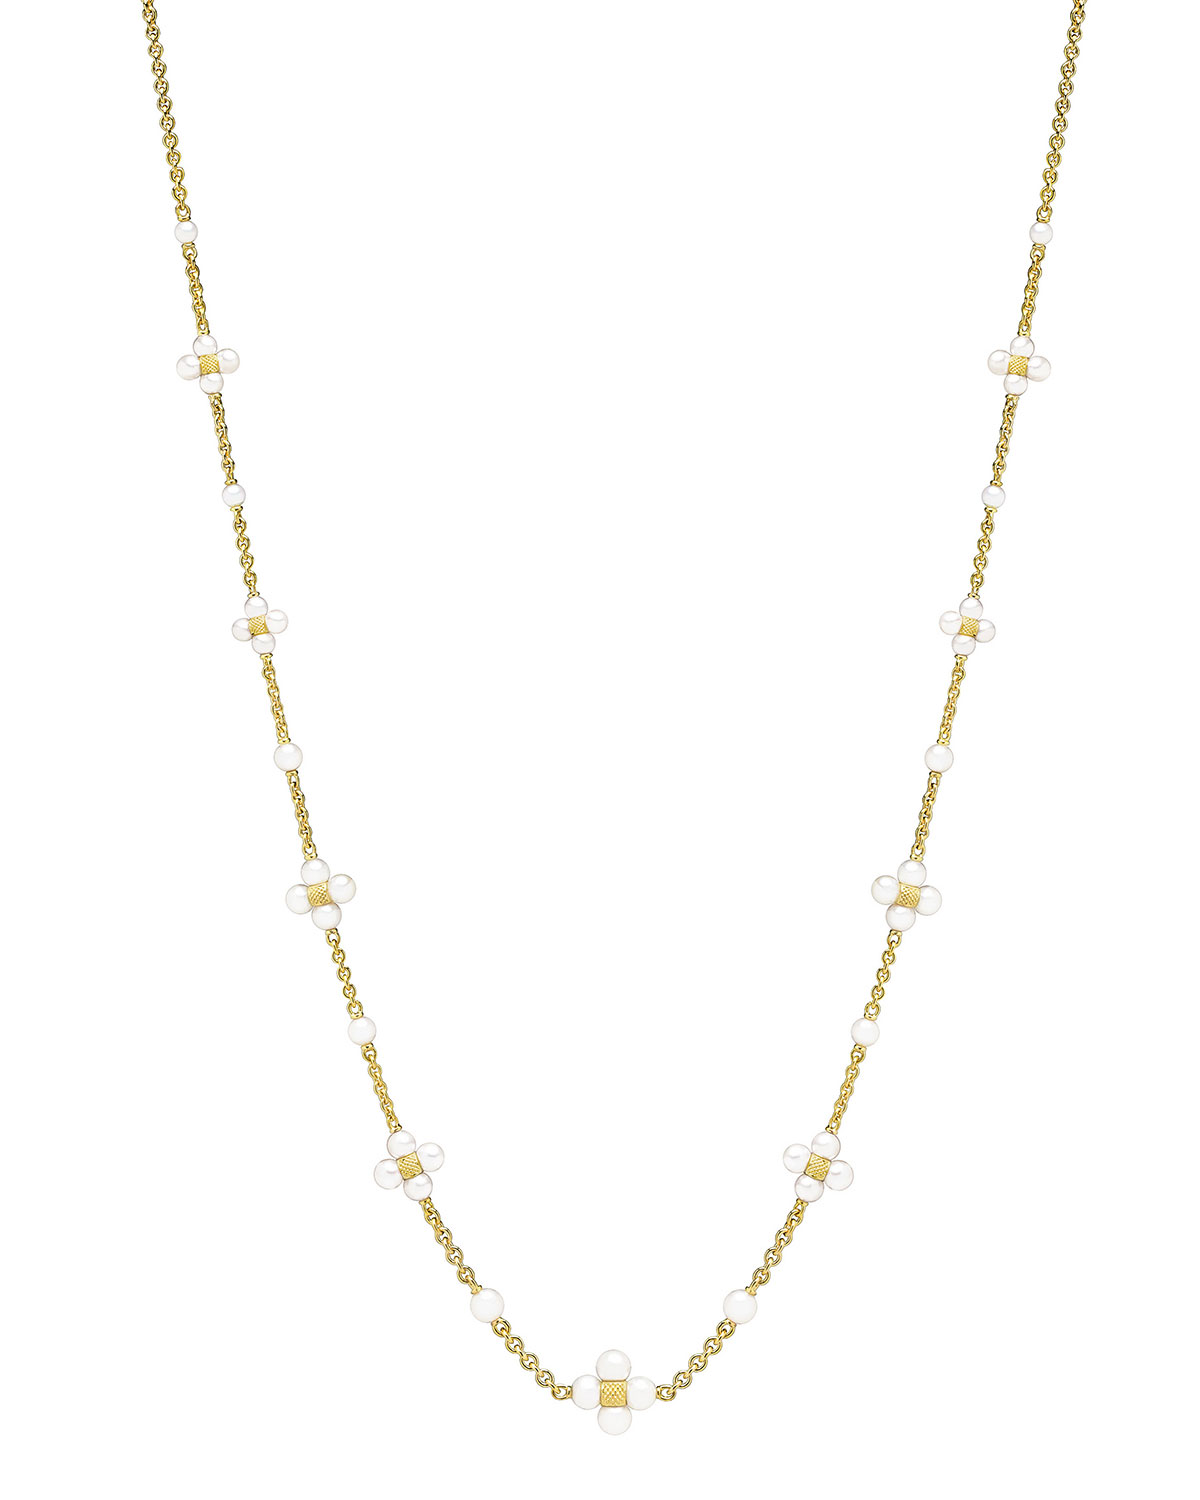 PAUL MORELLI 18K Gold Pearl Sequence Necklace